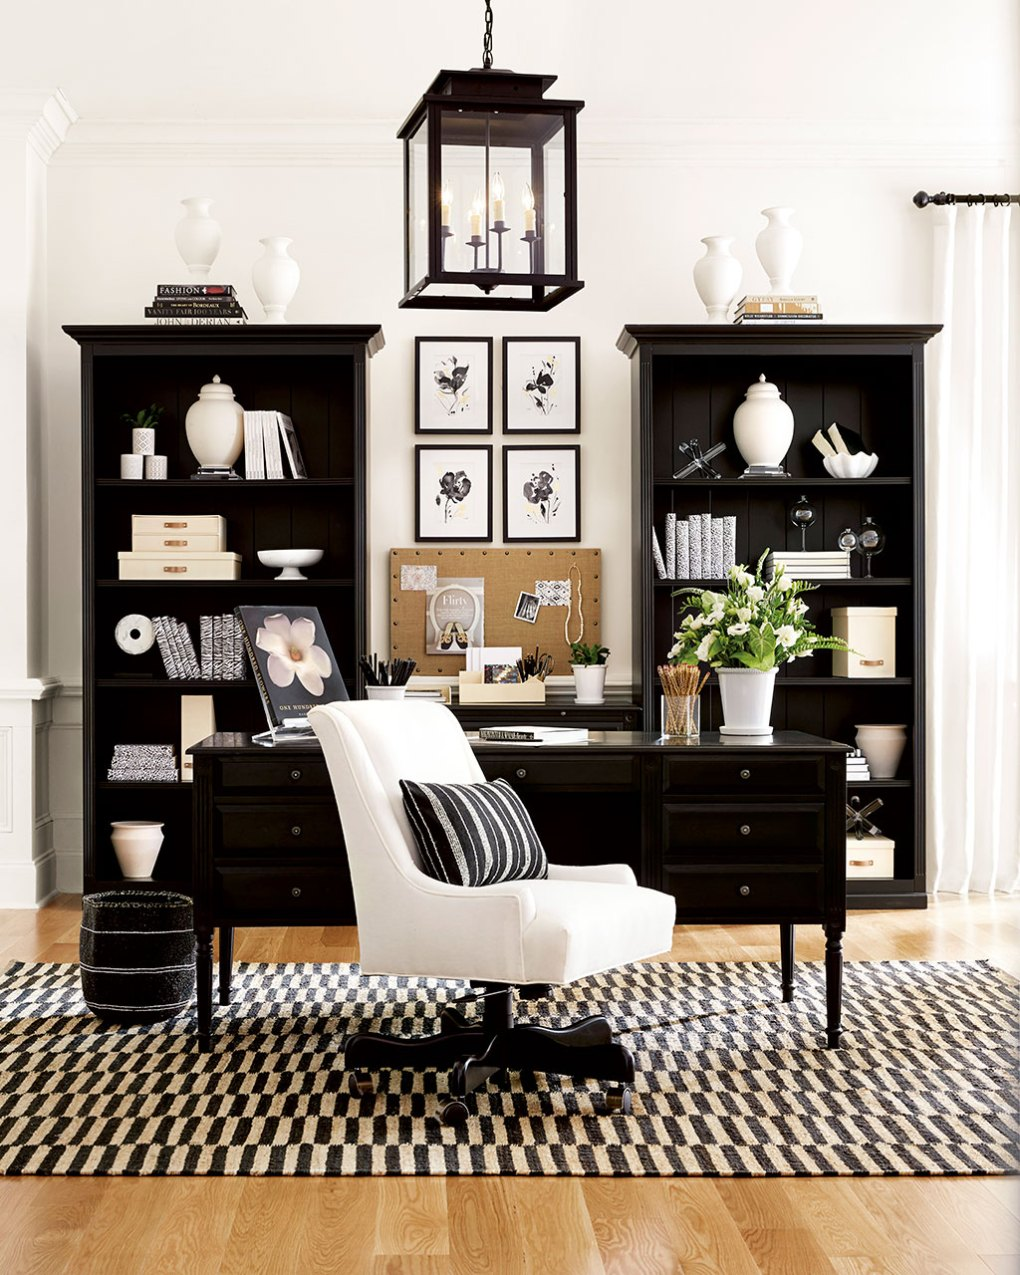 Black and white themed home office by Ballard Designs